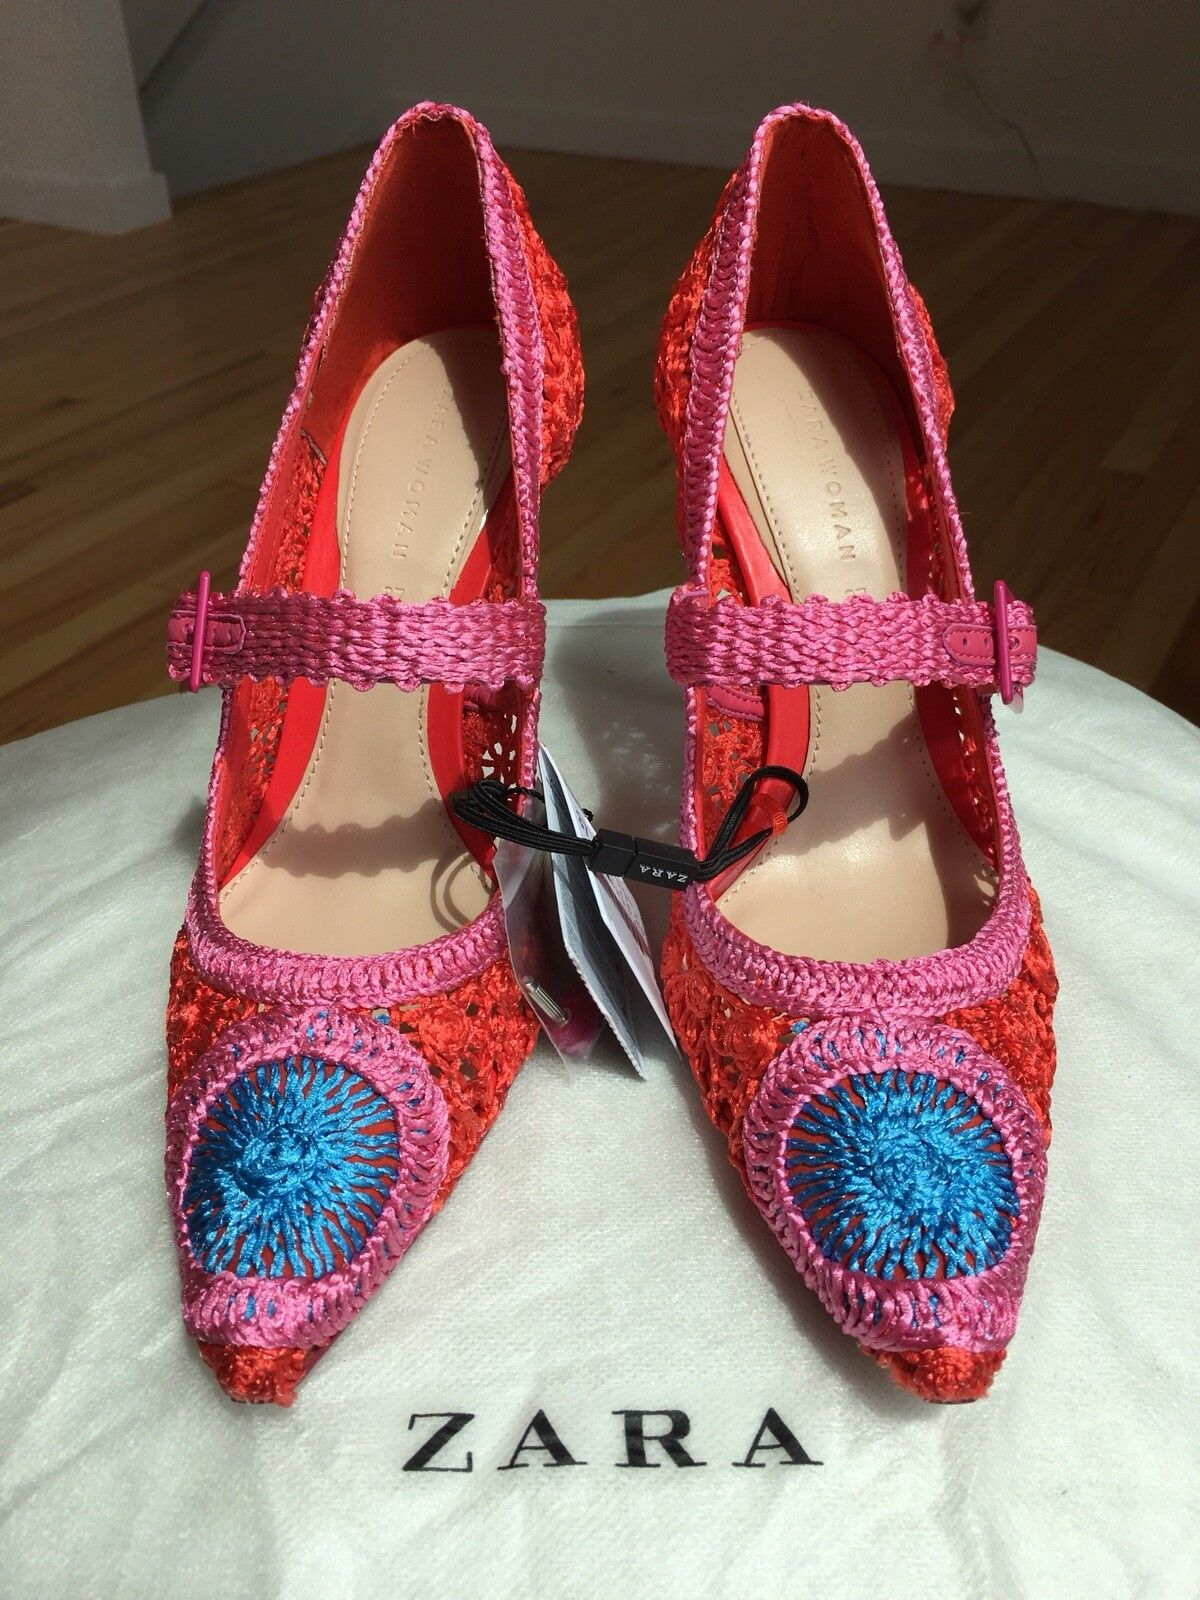 Zara Crochet High Heel Pumps Court shoes shoes shoes Red 6.5-NWT cf33bc